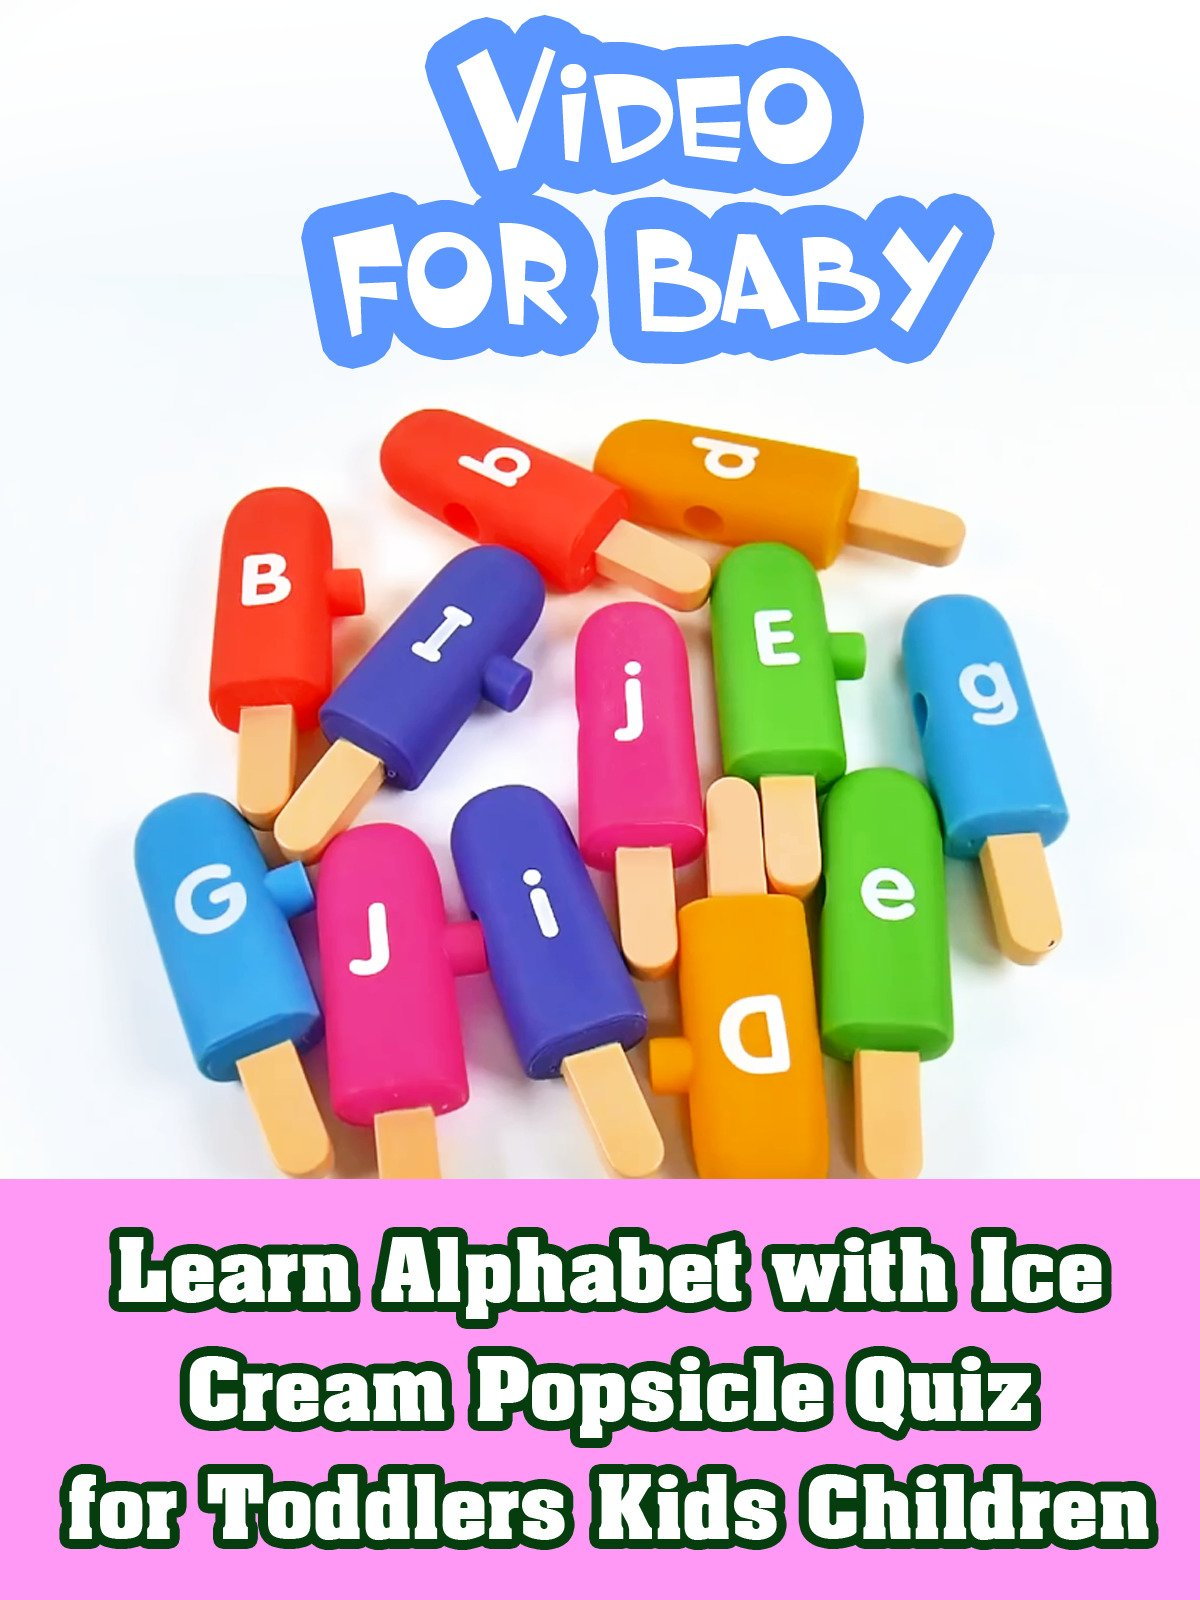 Learn Alphabet with Ice Cream Popsicle Quiz for Toddlers Kids Children